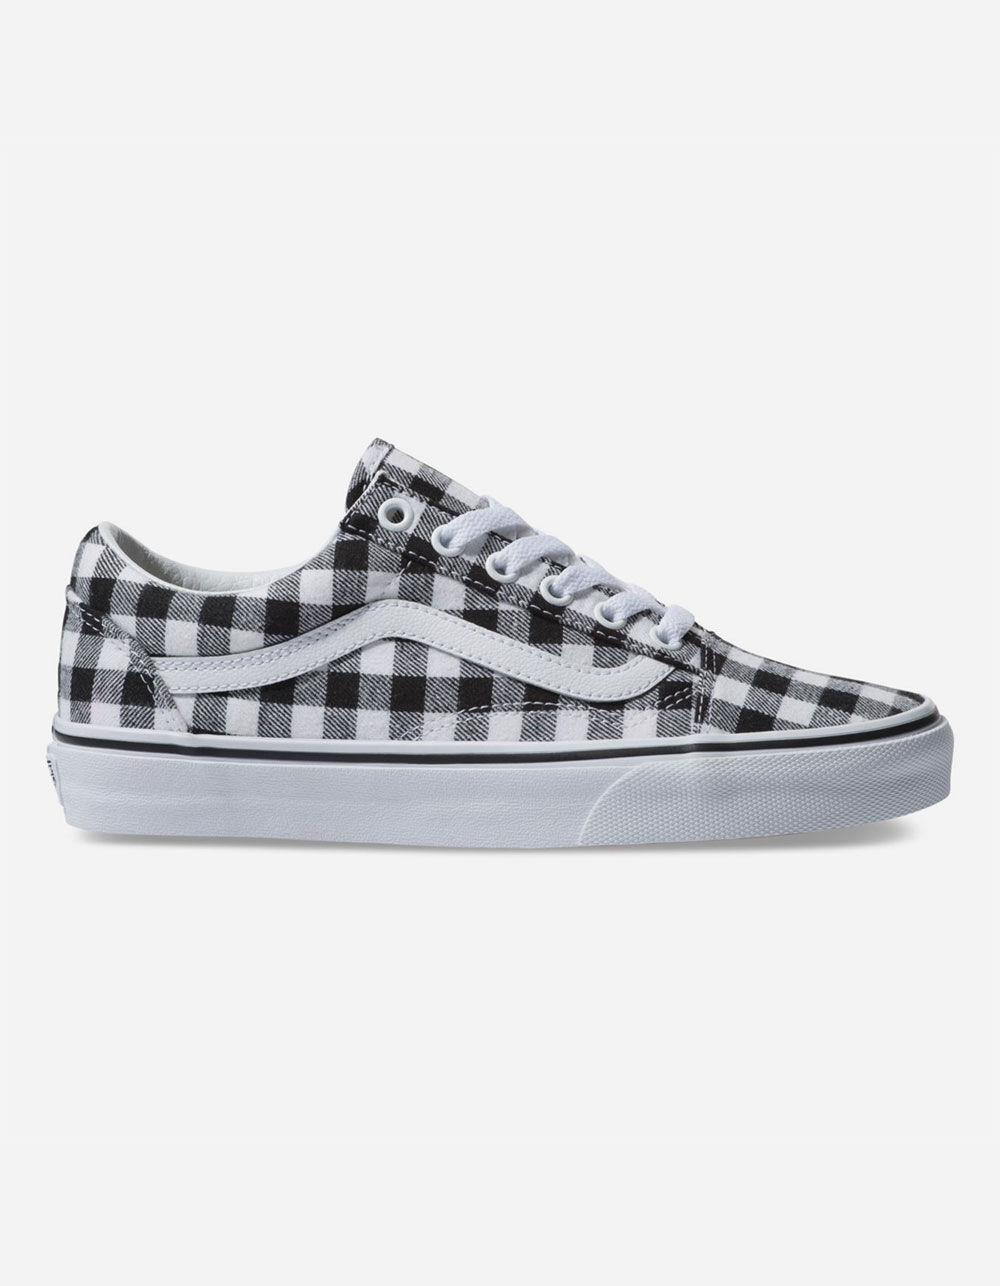 VANS Gingham Old Skool Black & True White Shoes